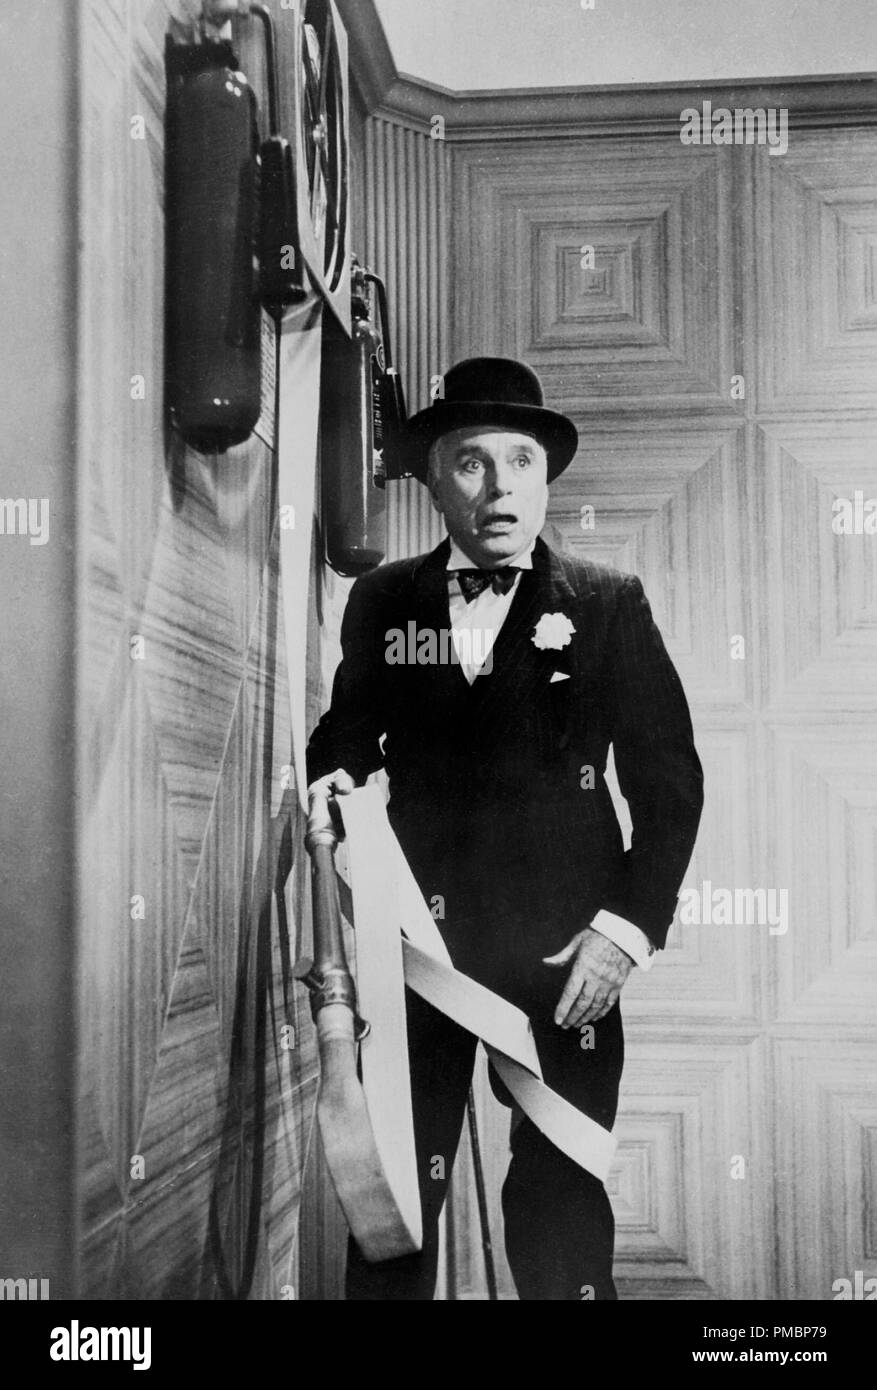 Charles Chaplin, 'A King of New York', 1957 Archway Ent.  File Reference # 32603_292THA - Stock Image